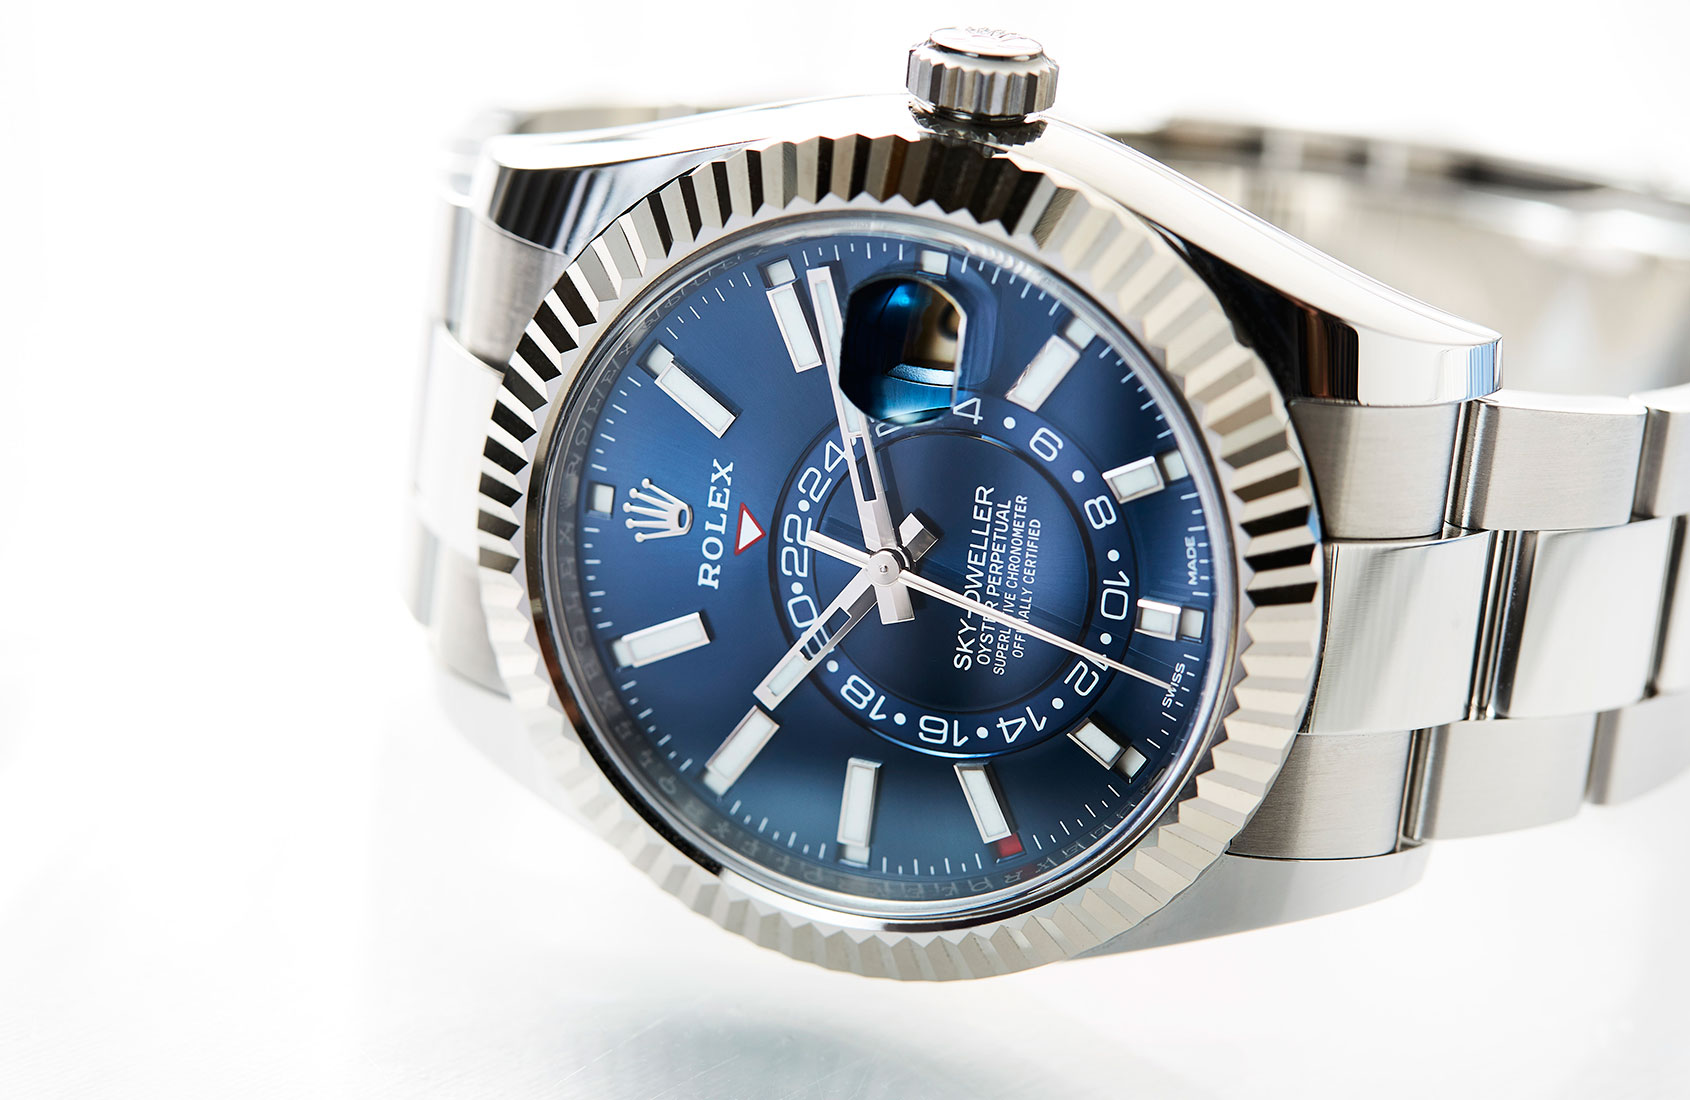 IN-DEPTH: The 2017 Rolex Sky-Dweller is getting better with age, and these pictures and video prove it